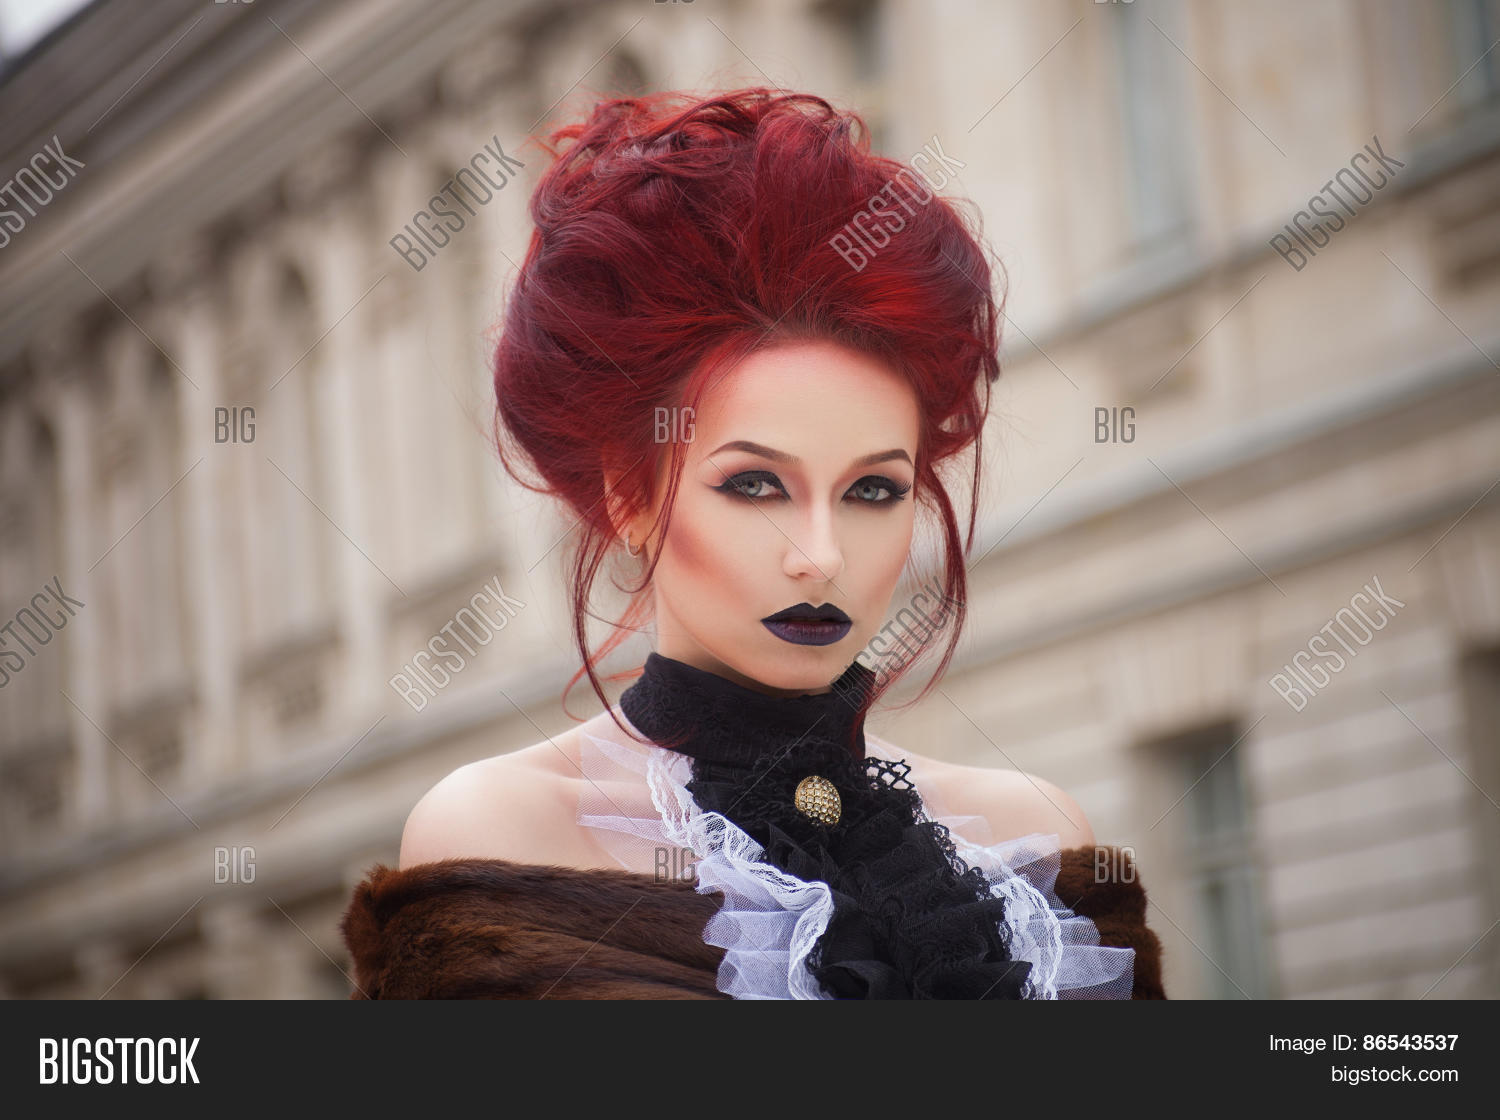 Sexy Woman With Gothic Makeup And Red Hair Castle